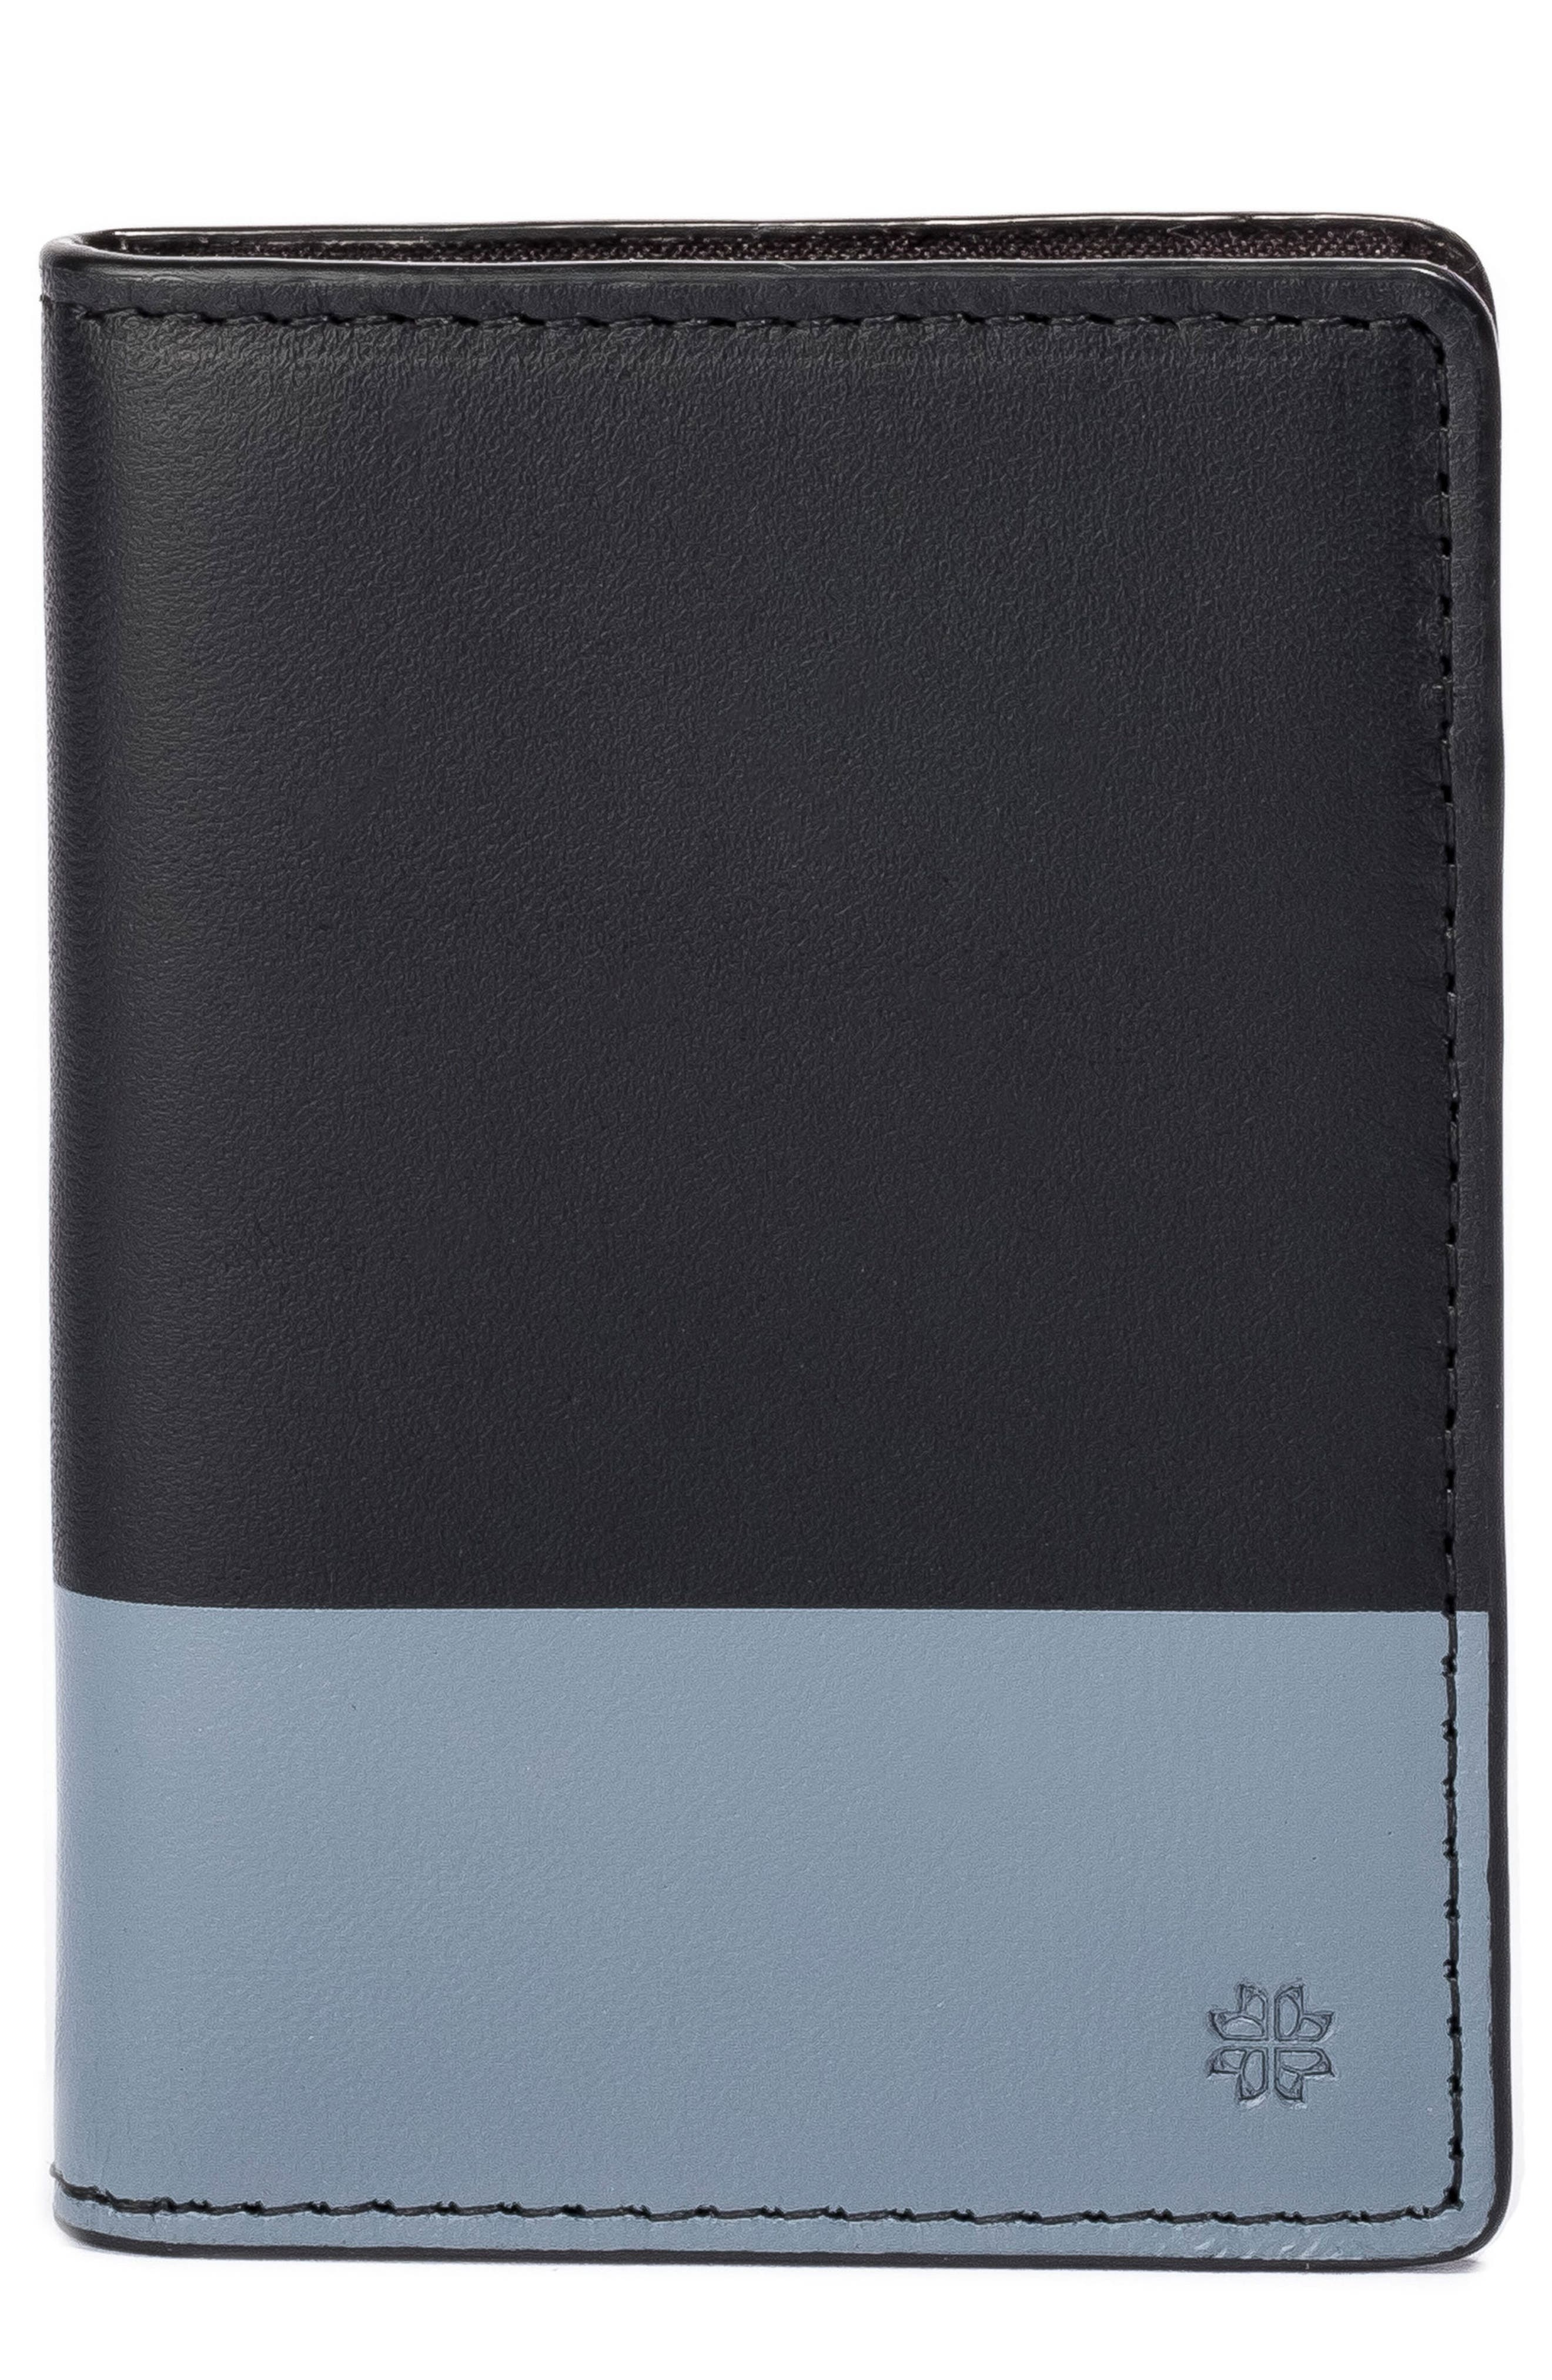 Leather Wallet,                             Main thumbnail 1, color,                             020